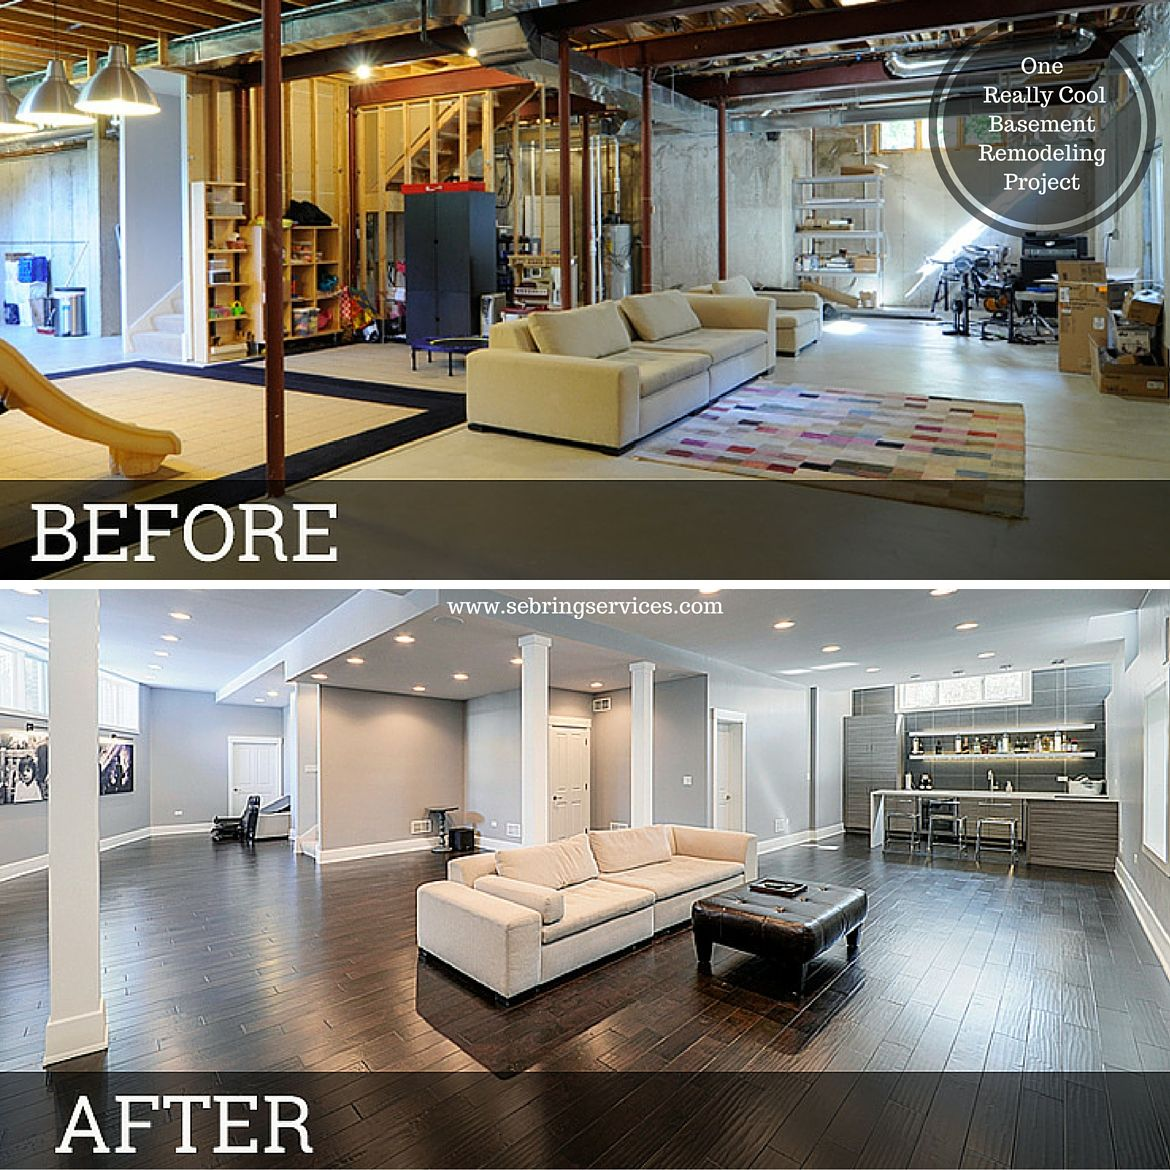 Sidd Nisha S Basement Before After Pictures In 2020 Basement